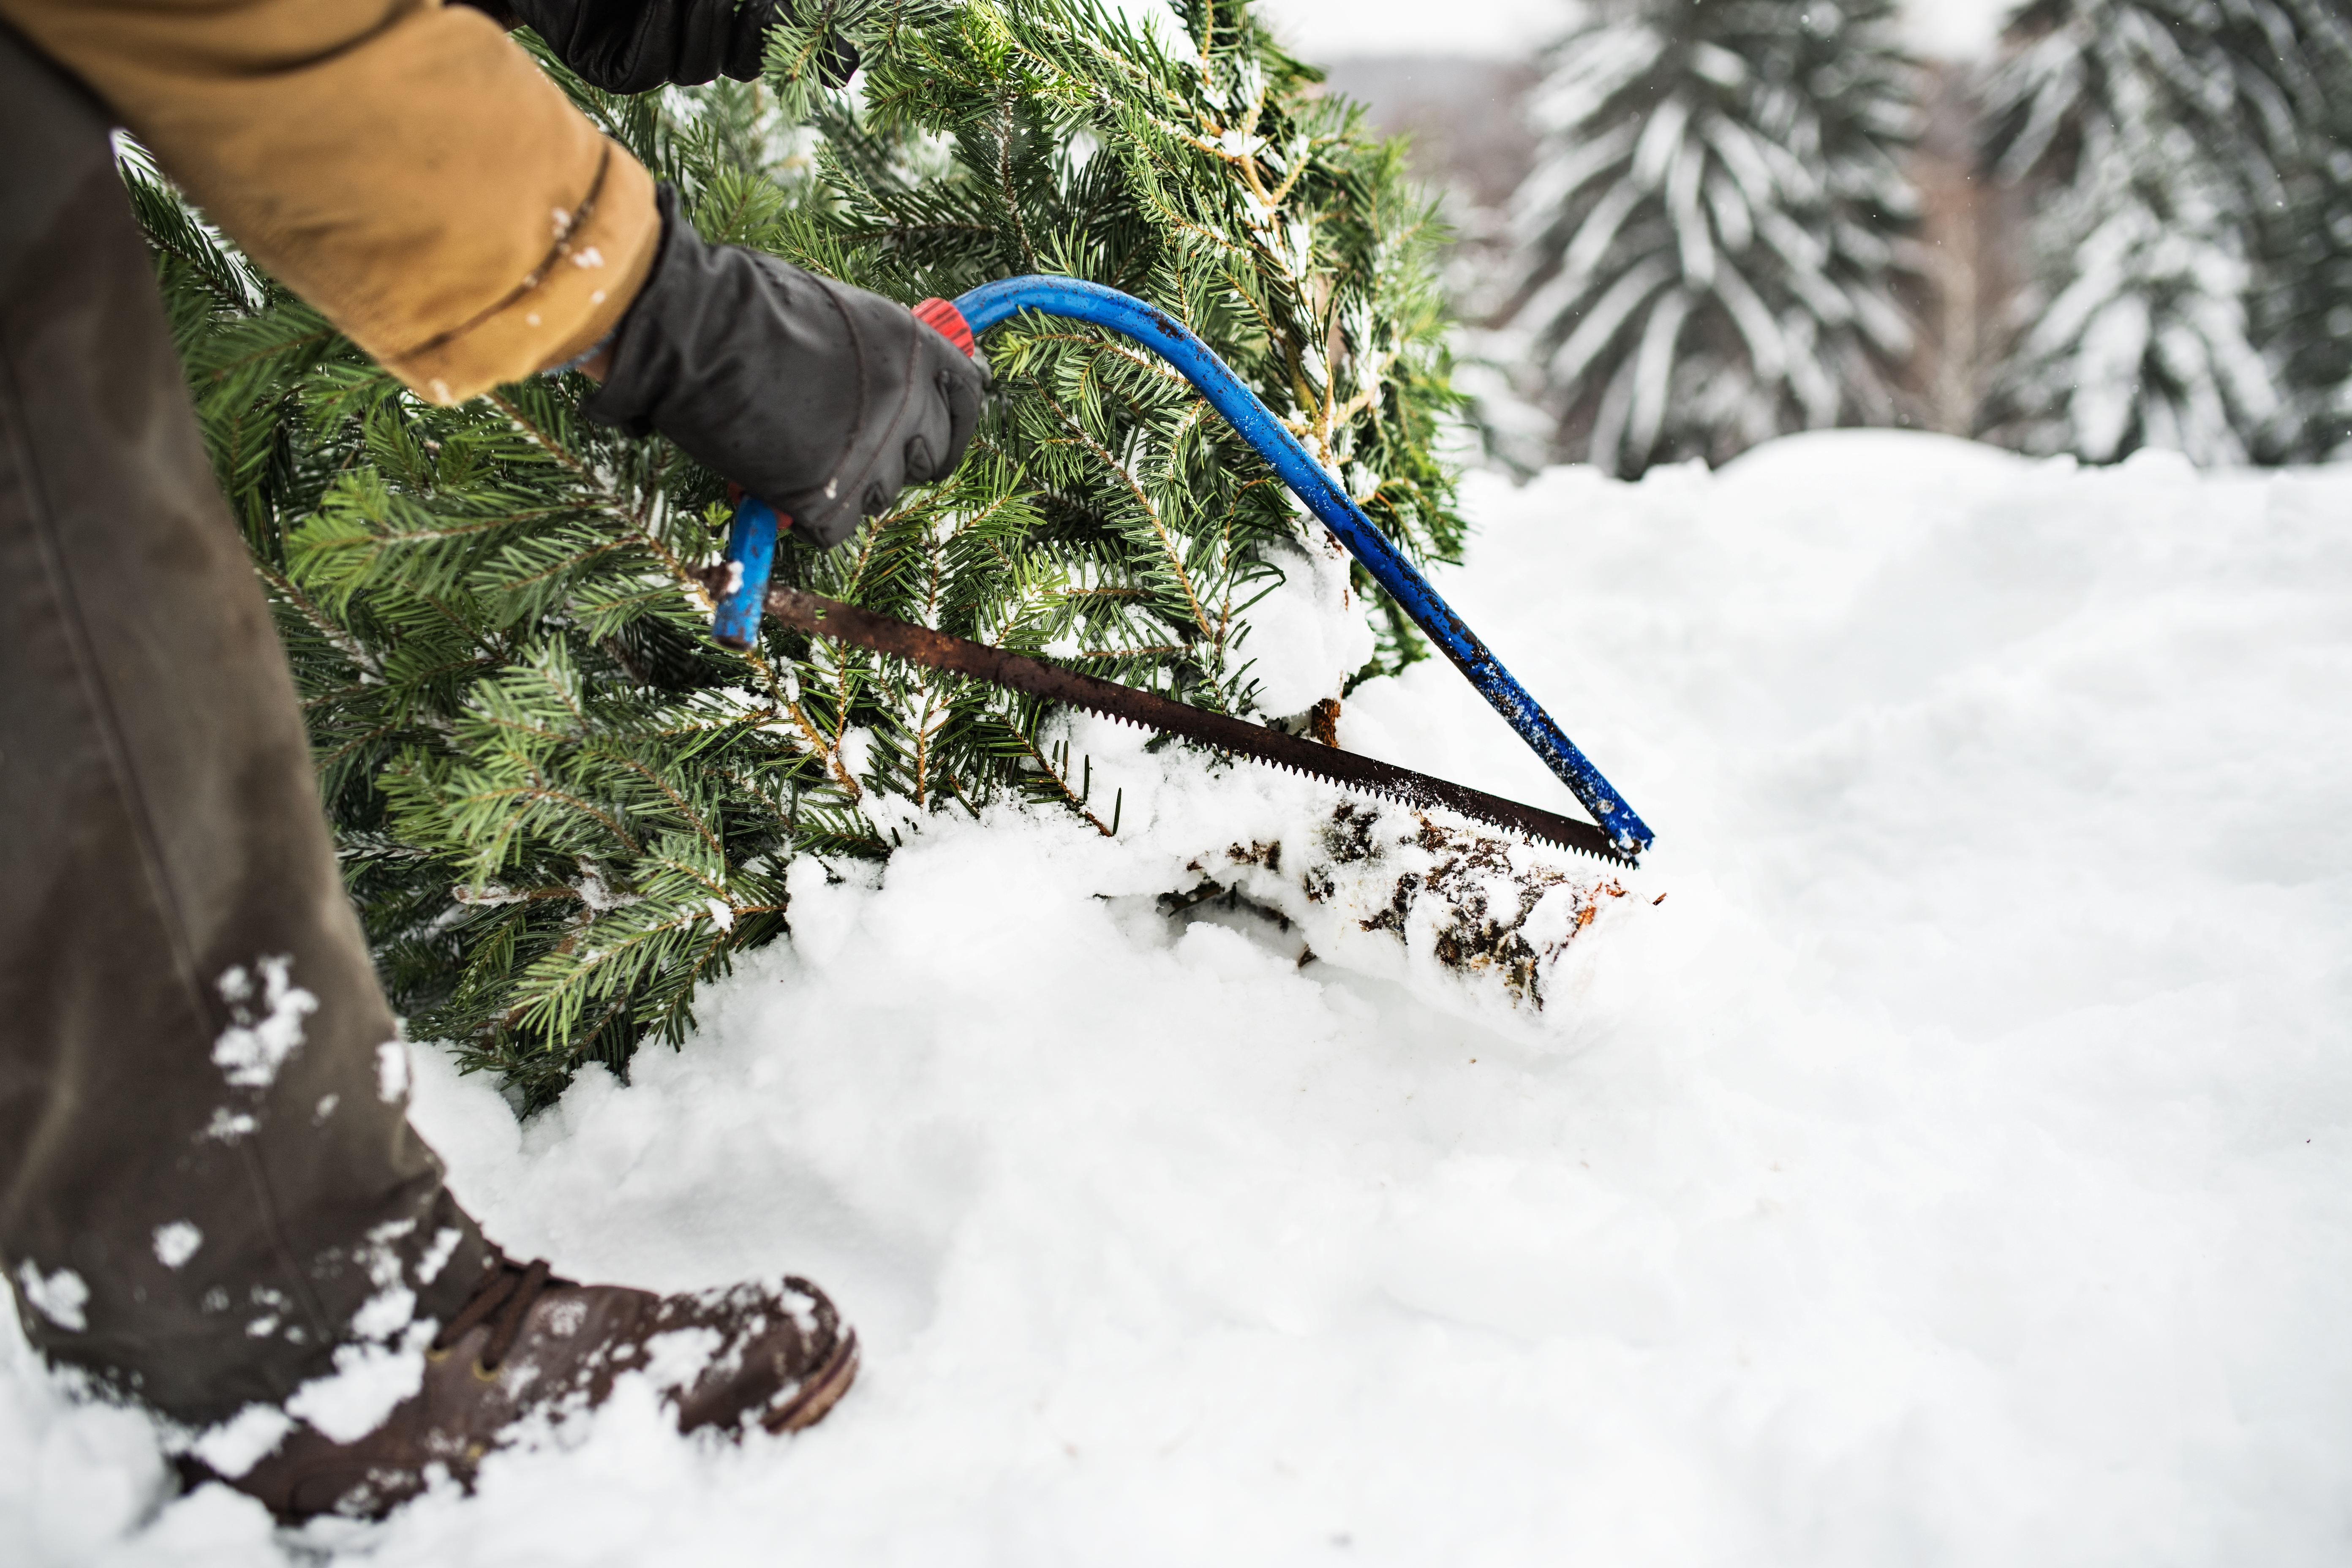 How to Prune Your Trees for Christmas